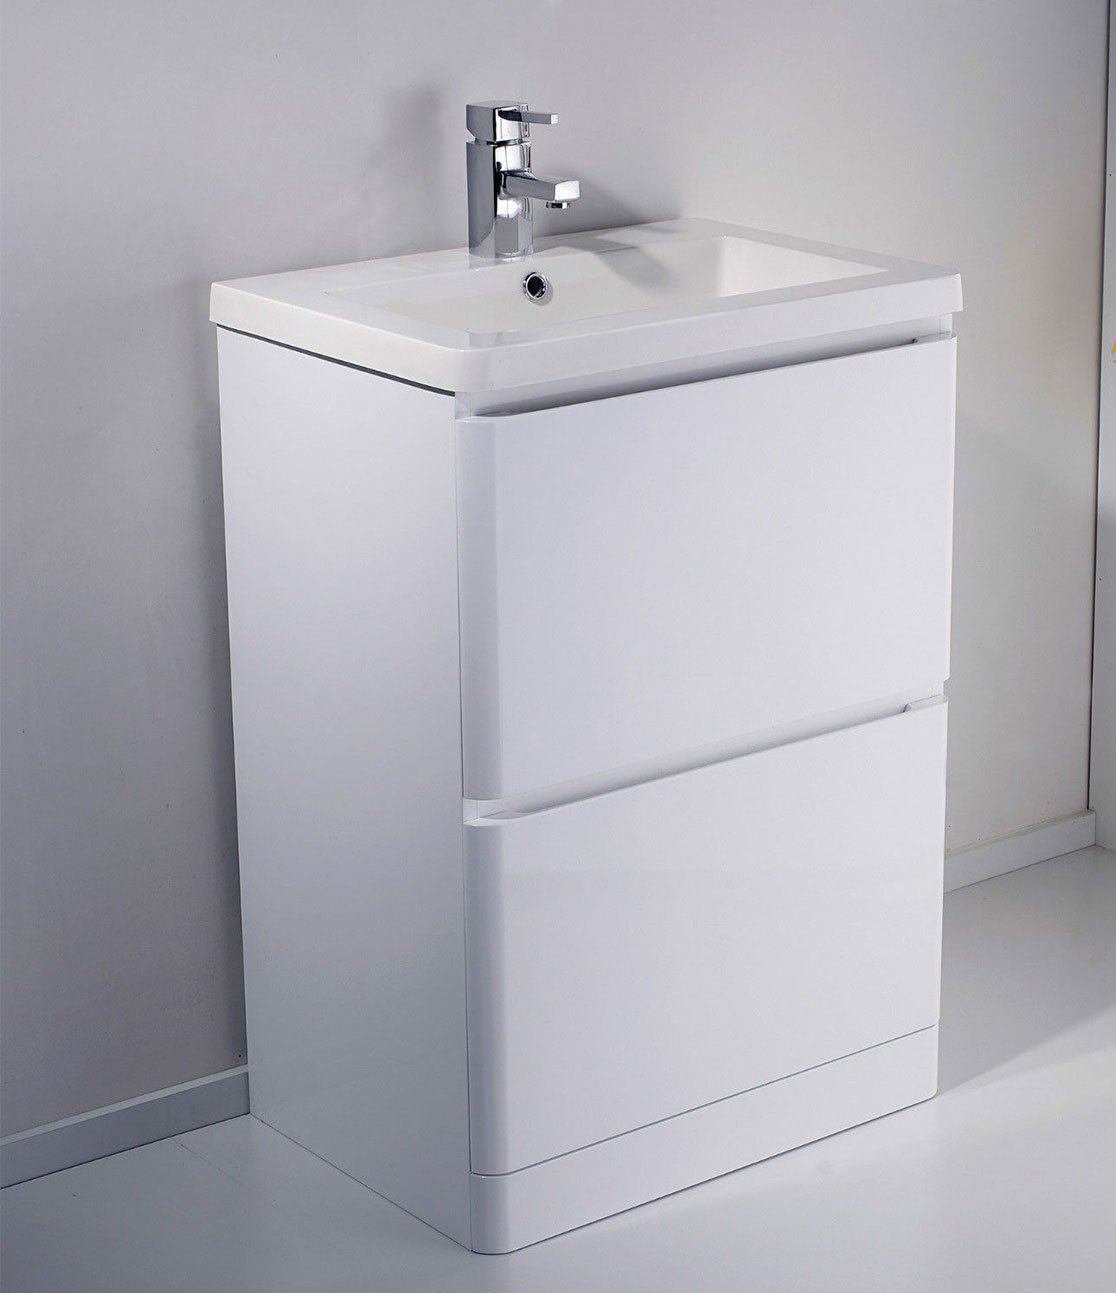 WHITE GLOSS MDF BATHROOM 2 DRAWER CONCEALED HANDLES BASIN VANITY UNIT   600MM       Customer review and more info